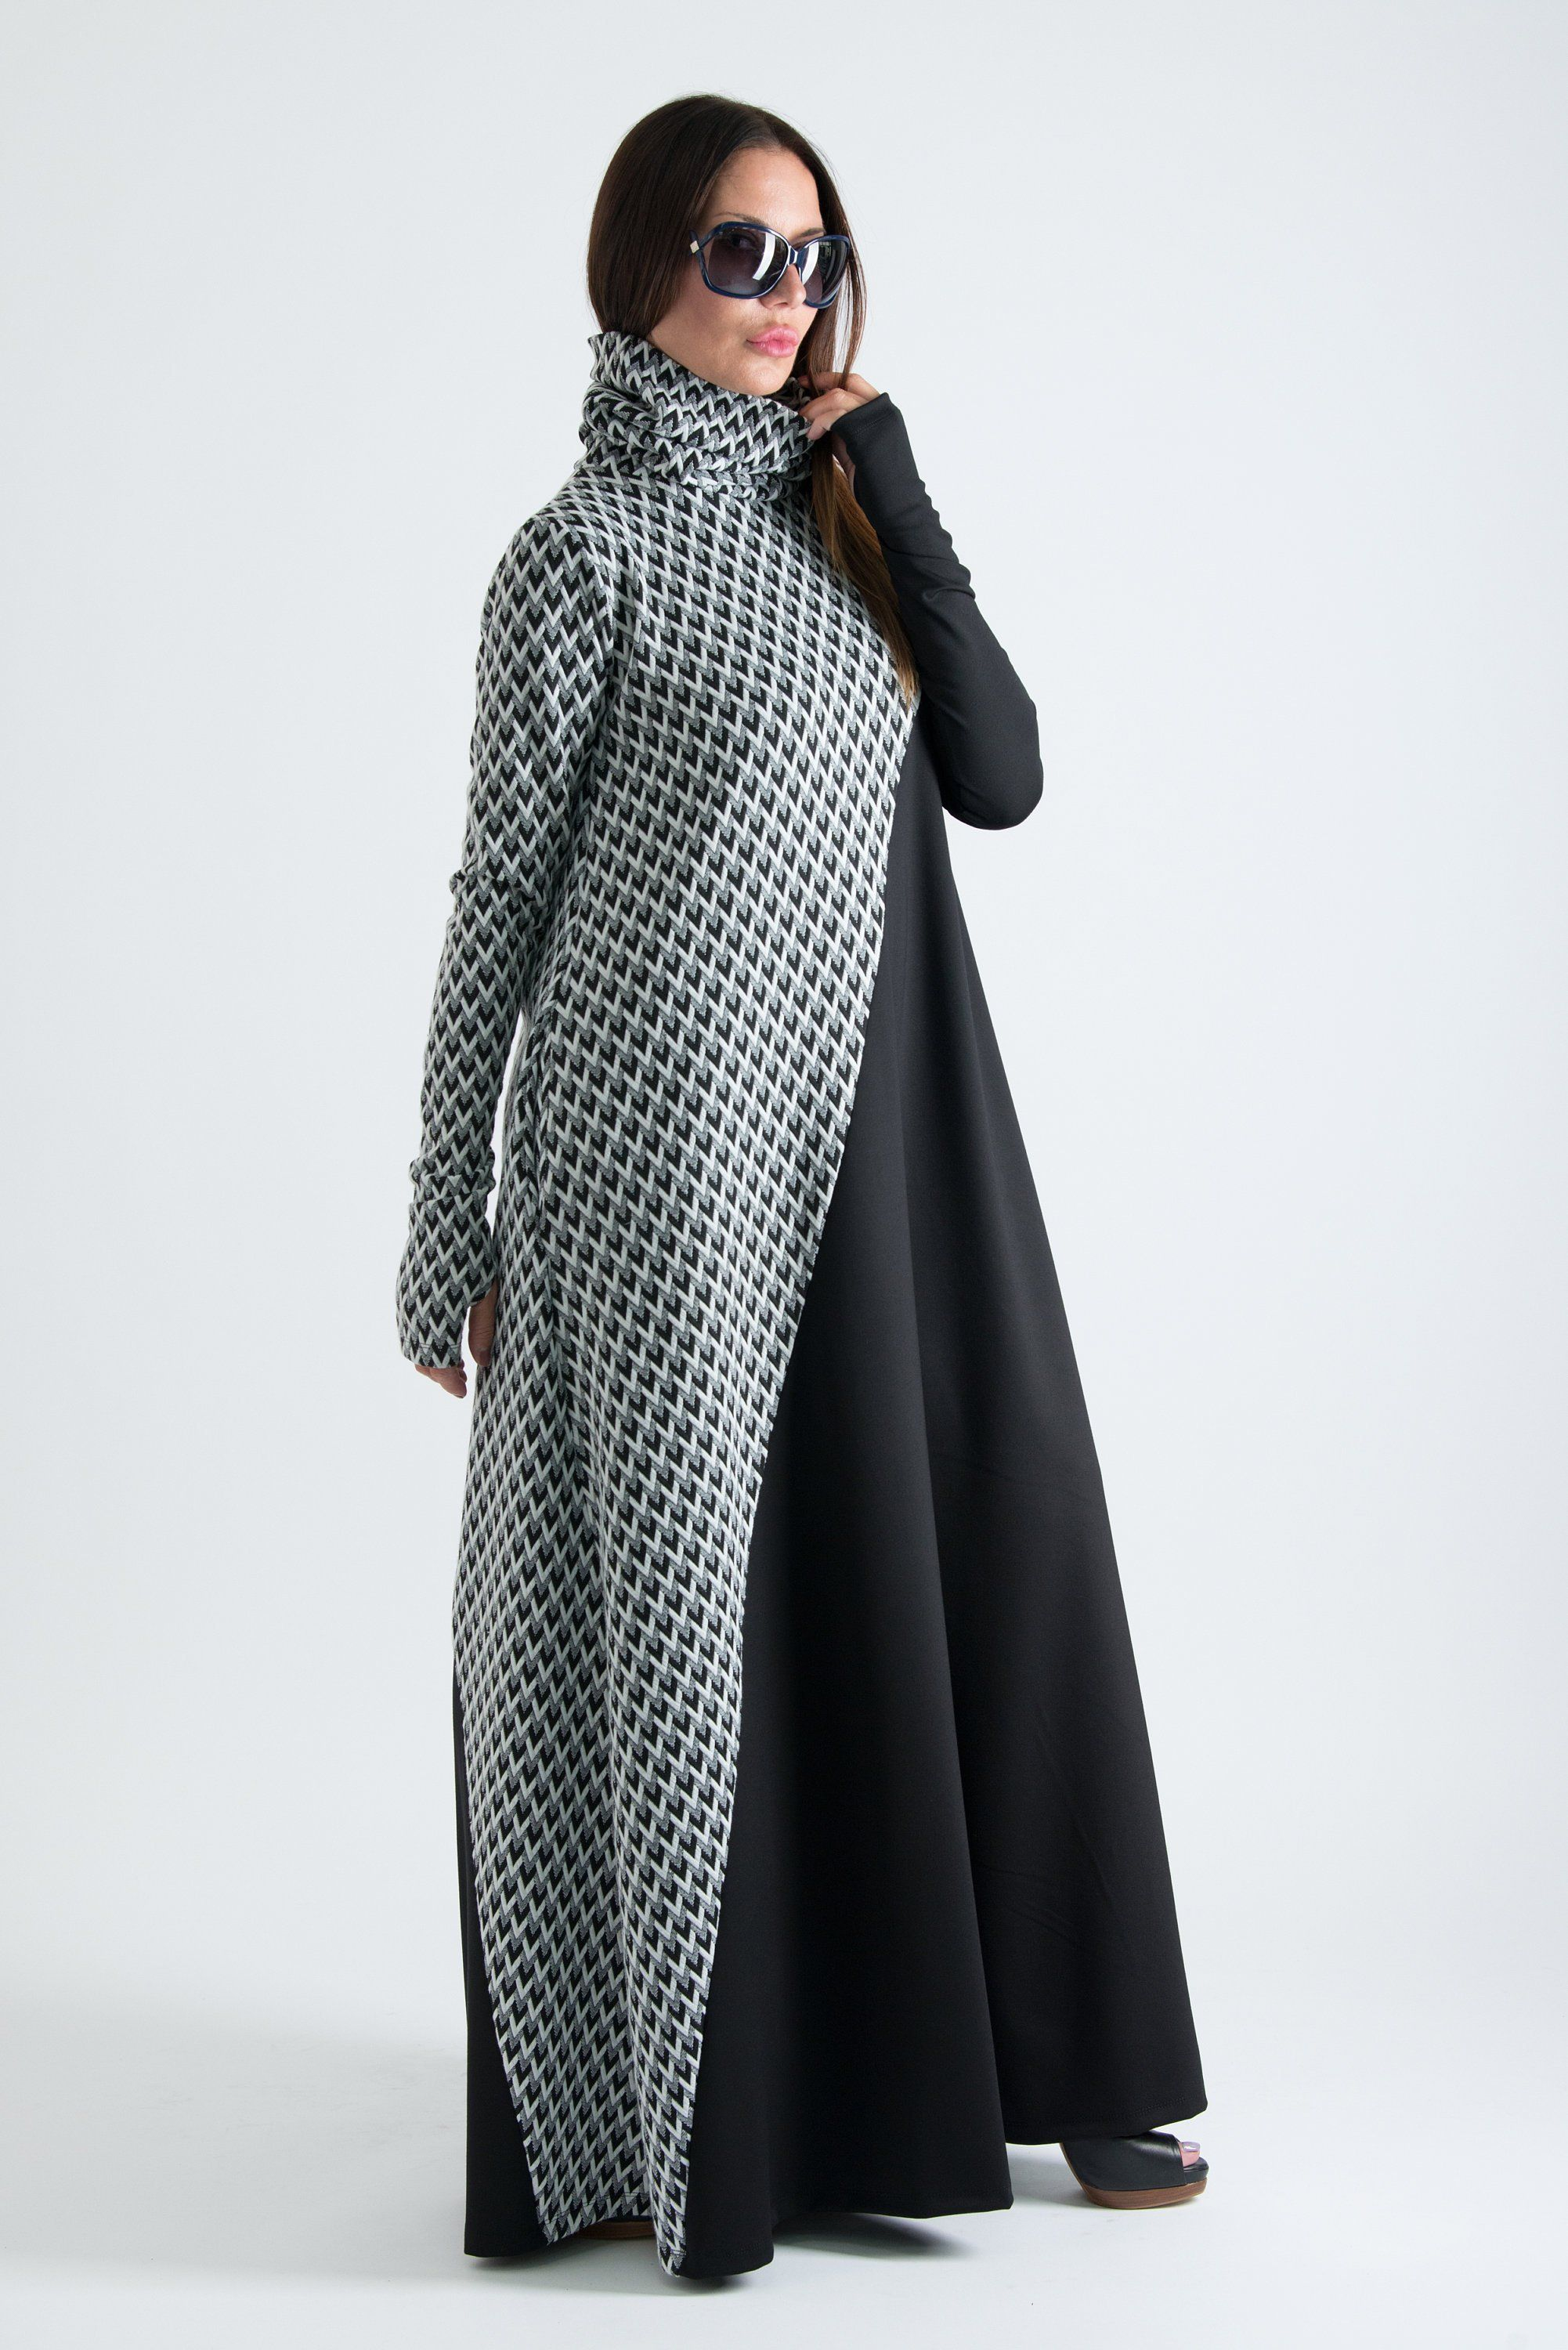 Autumn winter turtleneck maxi dress plus size dress long women